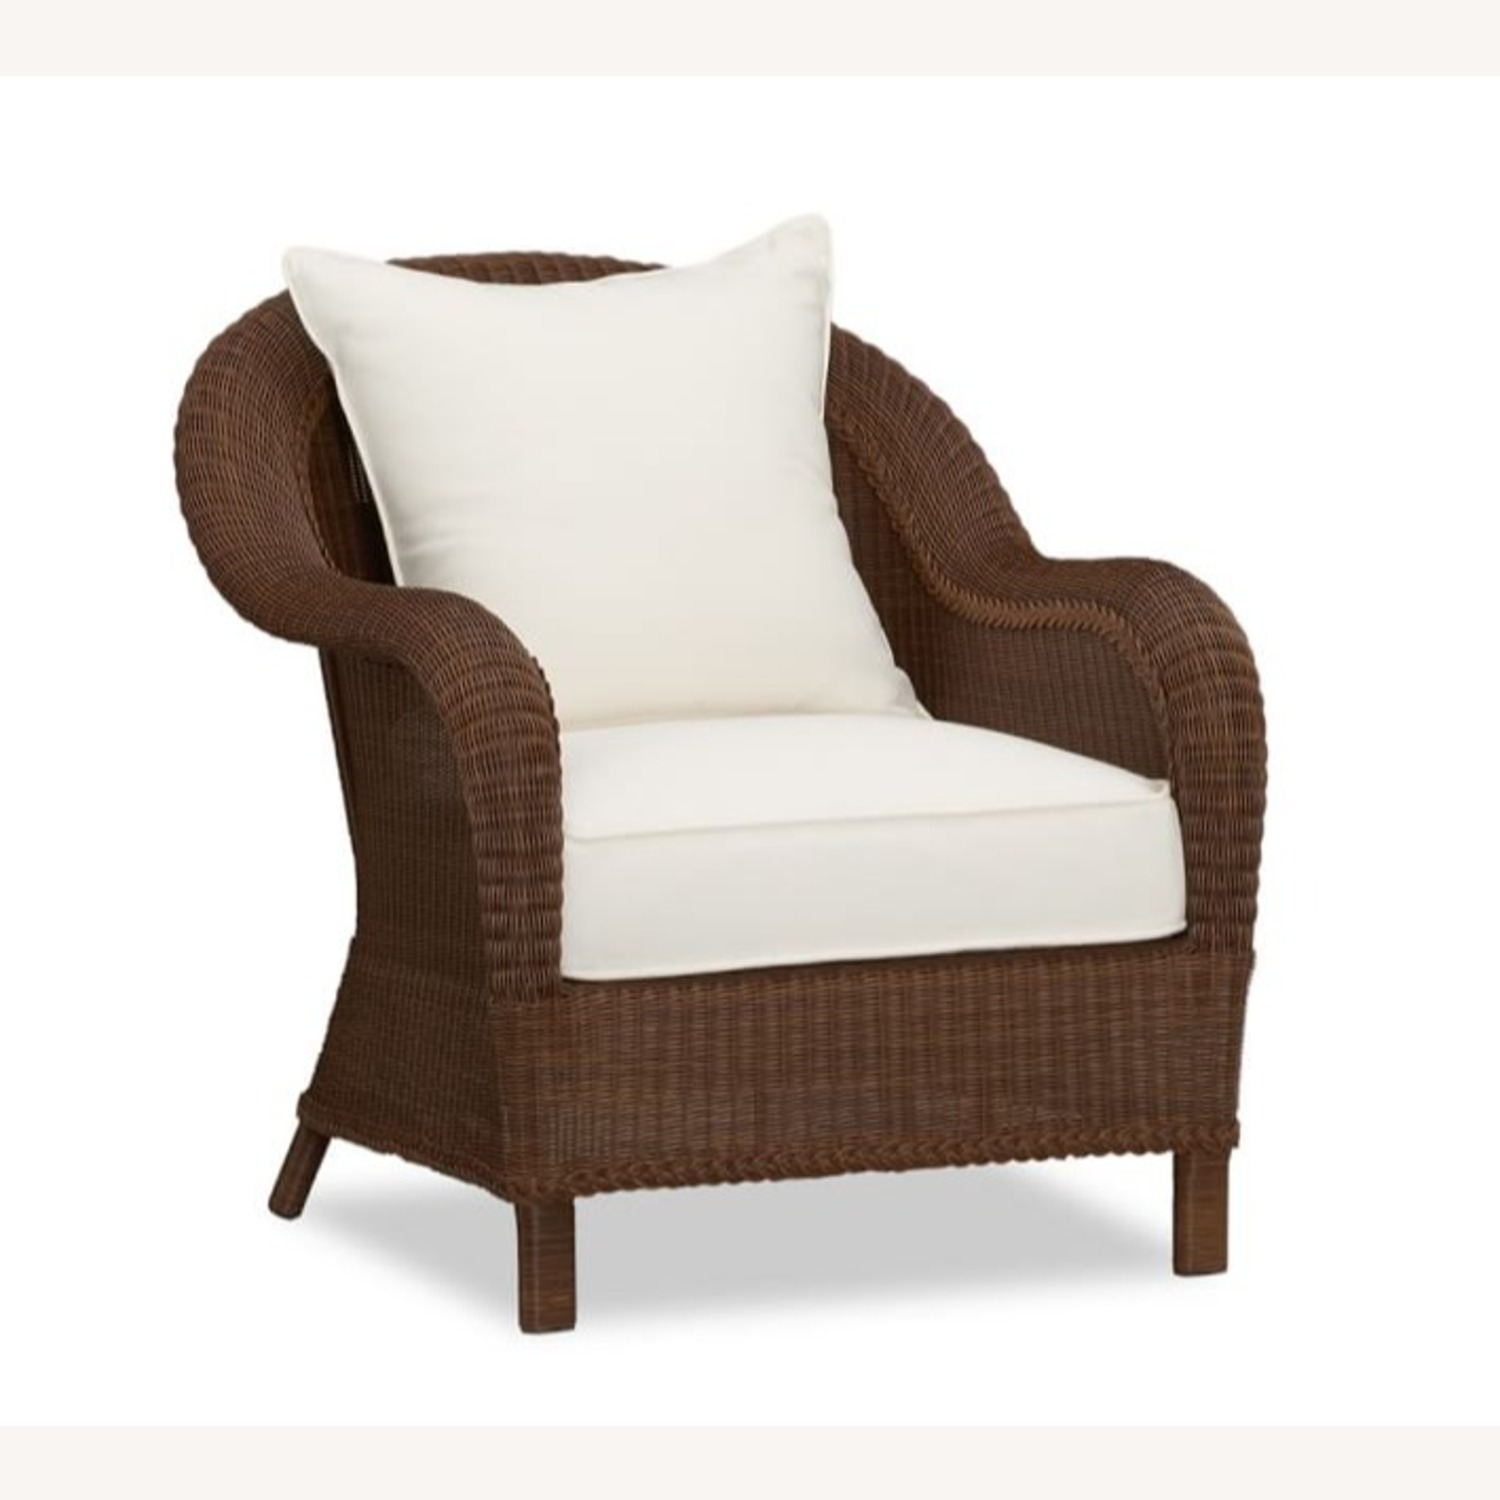 Pottery Barn Palmetto All-Weather Wicker Chair - image-1